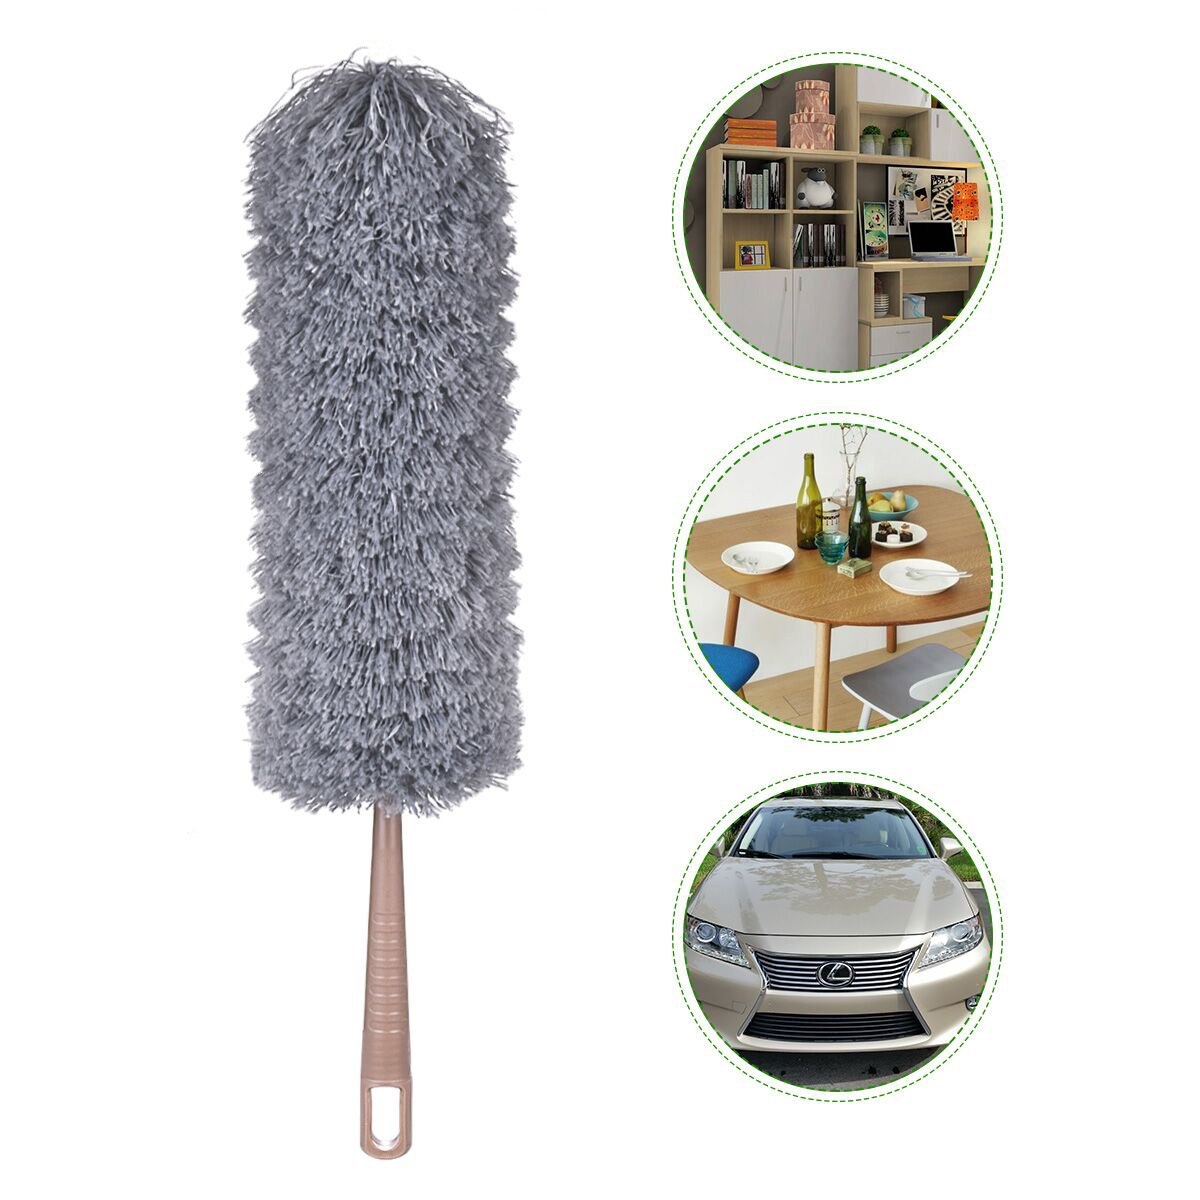 Microfiber Duster - Feather Duster Very Lightweight and Flexible - Can be Cleaned - Velvet-Free Cloth, Suitable for Ceiling Fans, Cathedral Ceilings, TVs and Bookshelves